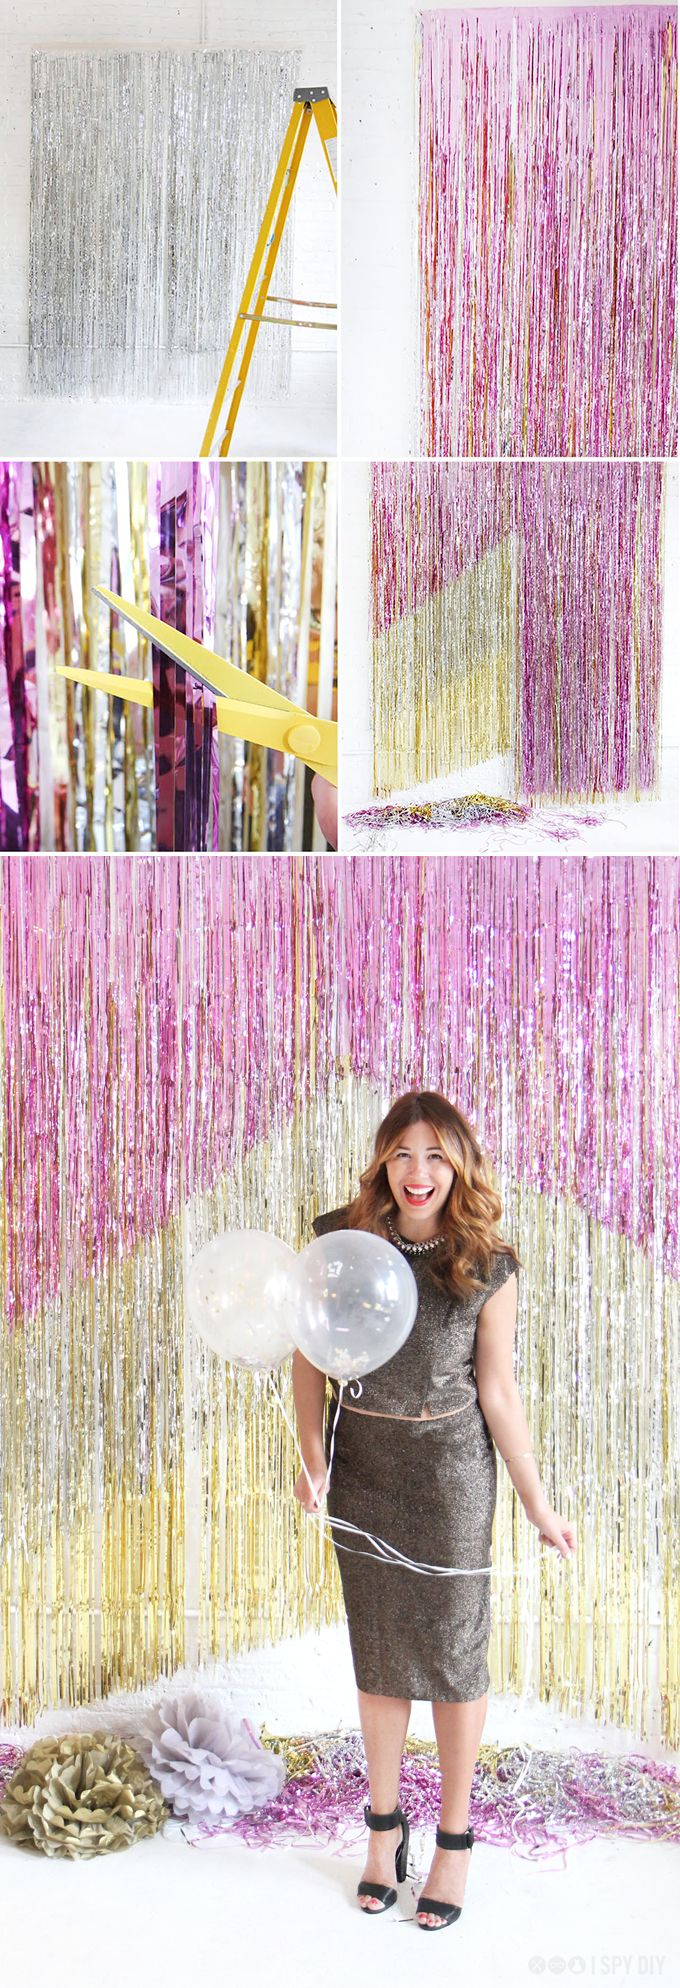 Video How To Host The Picture Perfect New Year S Eve Party Backdrops For Parties Diy New Year S Eve Diy Party